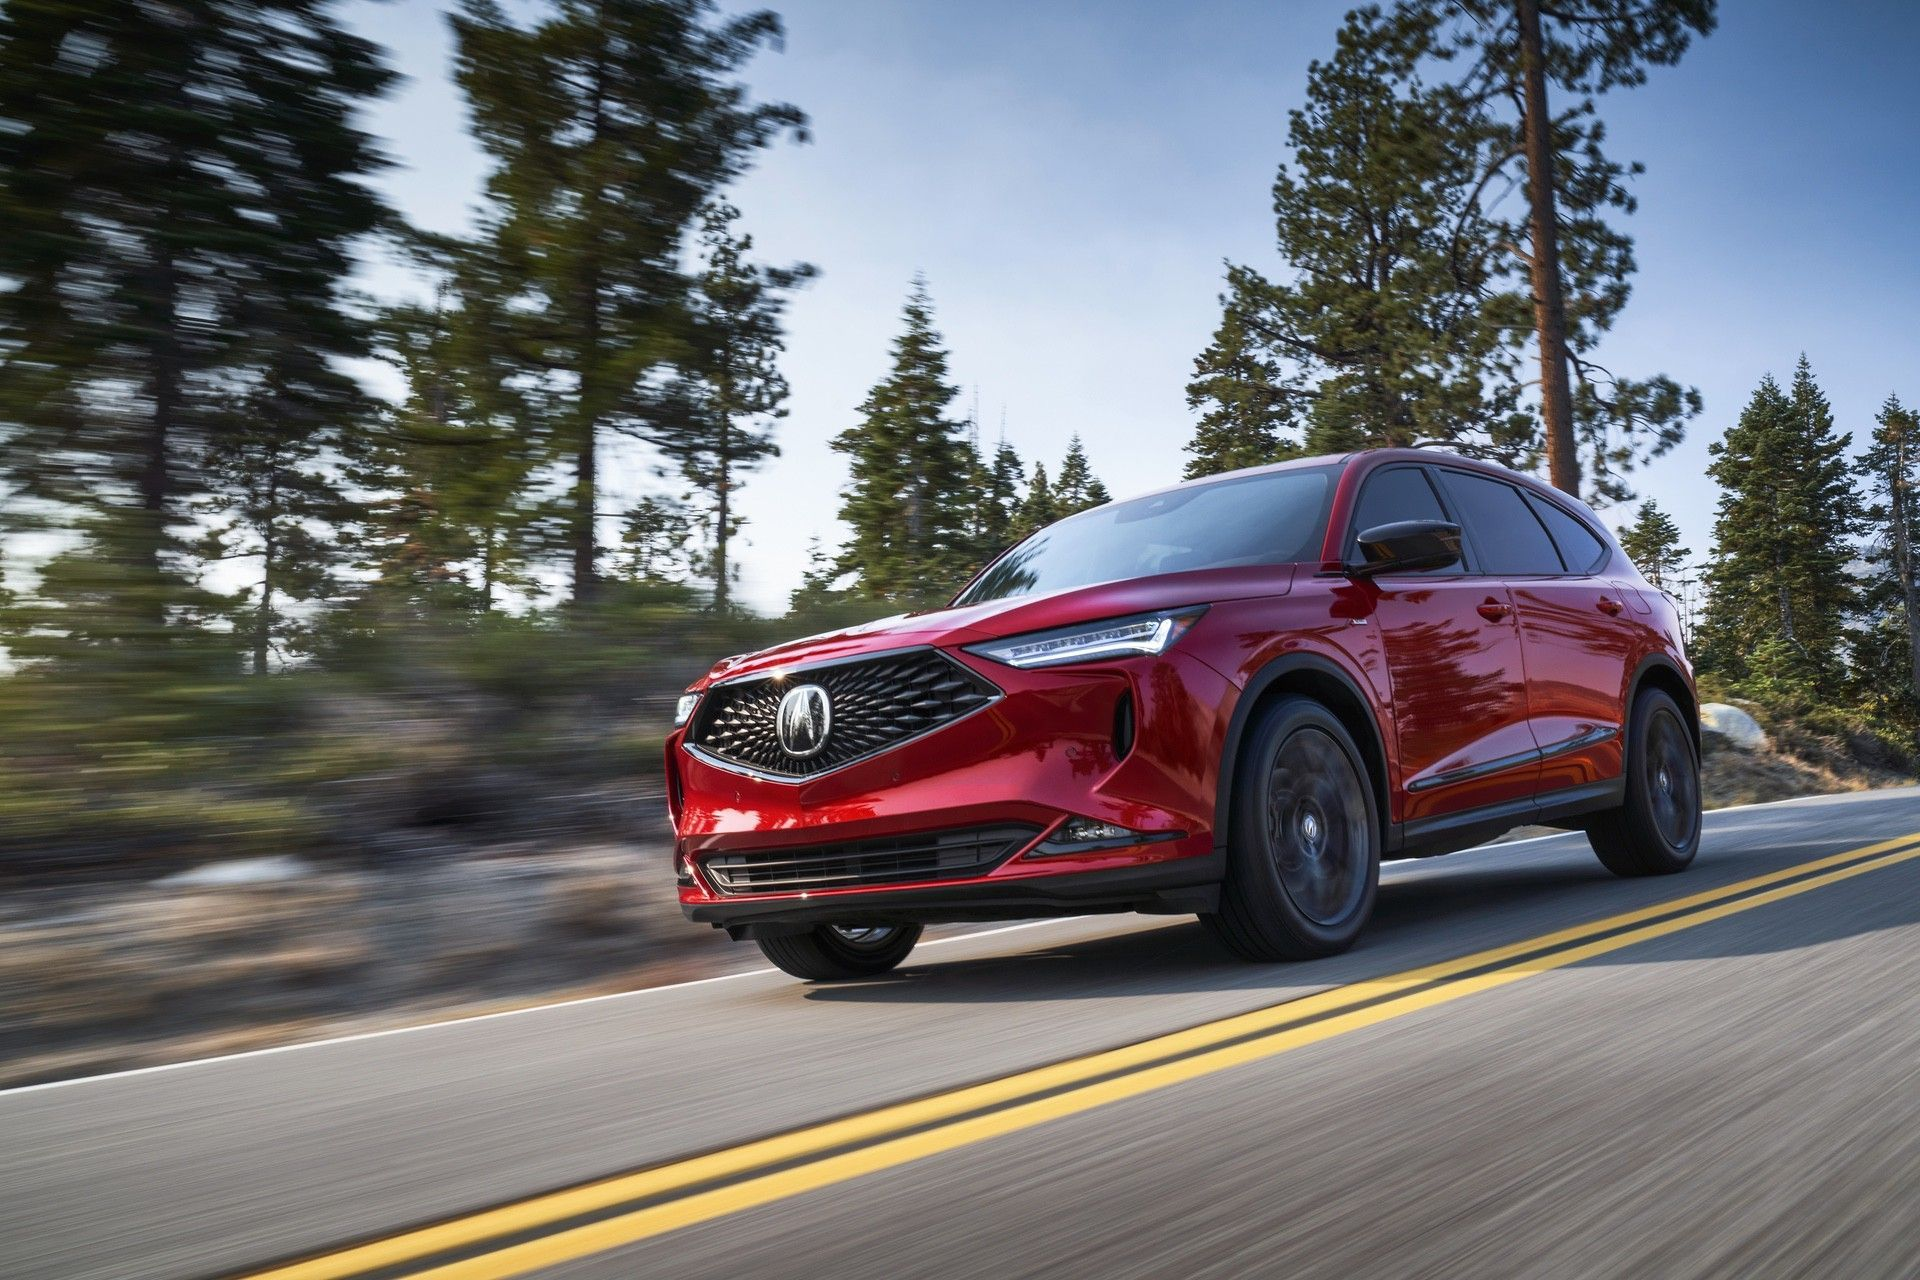 2022 MDX SH-AWD A-Spec Performance Red Pearl 3/4 Front Passenger Exterior running back road